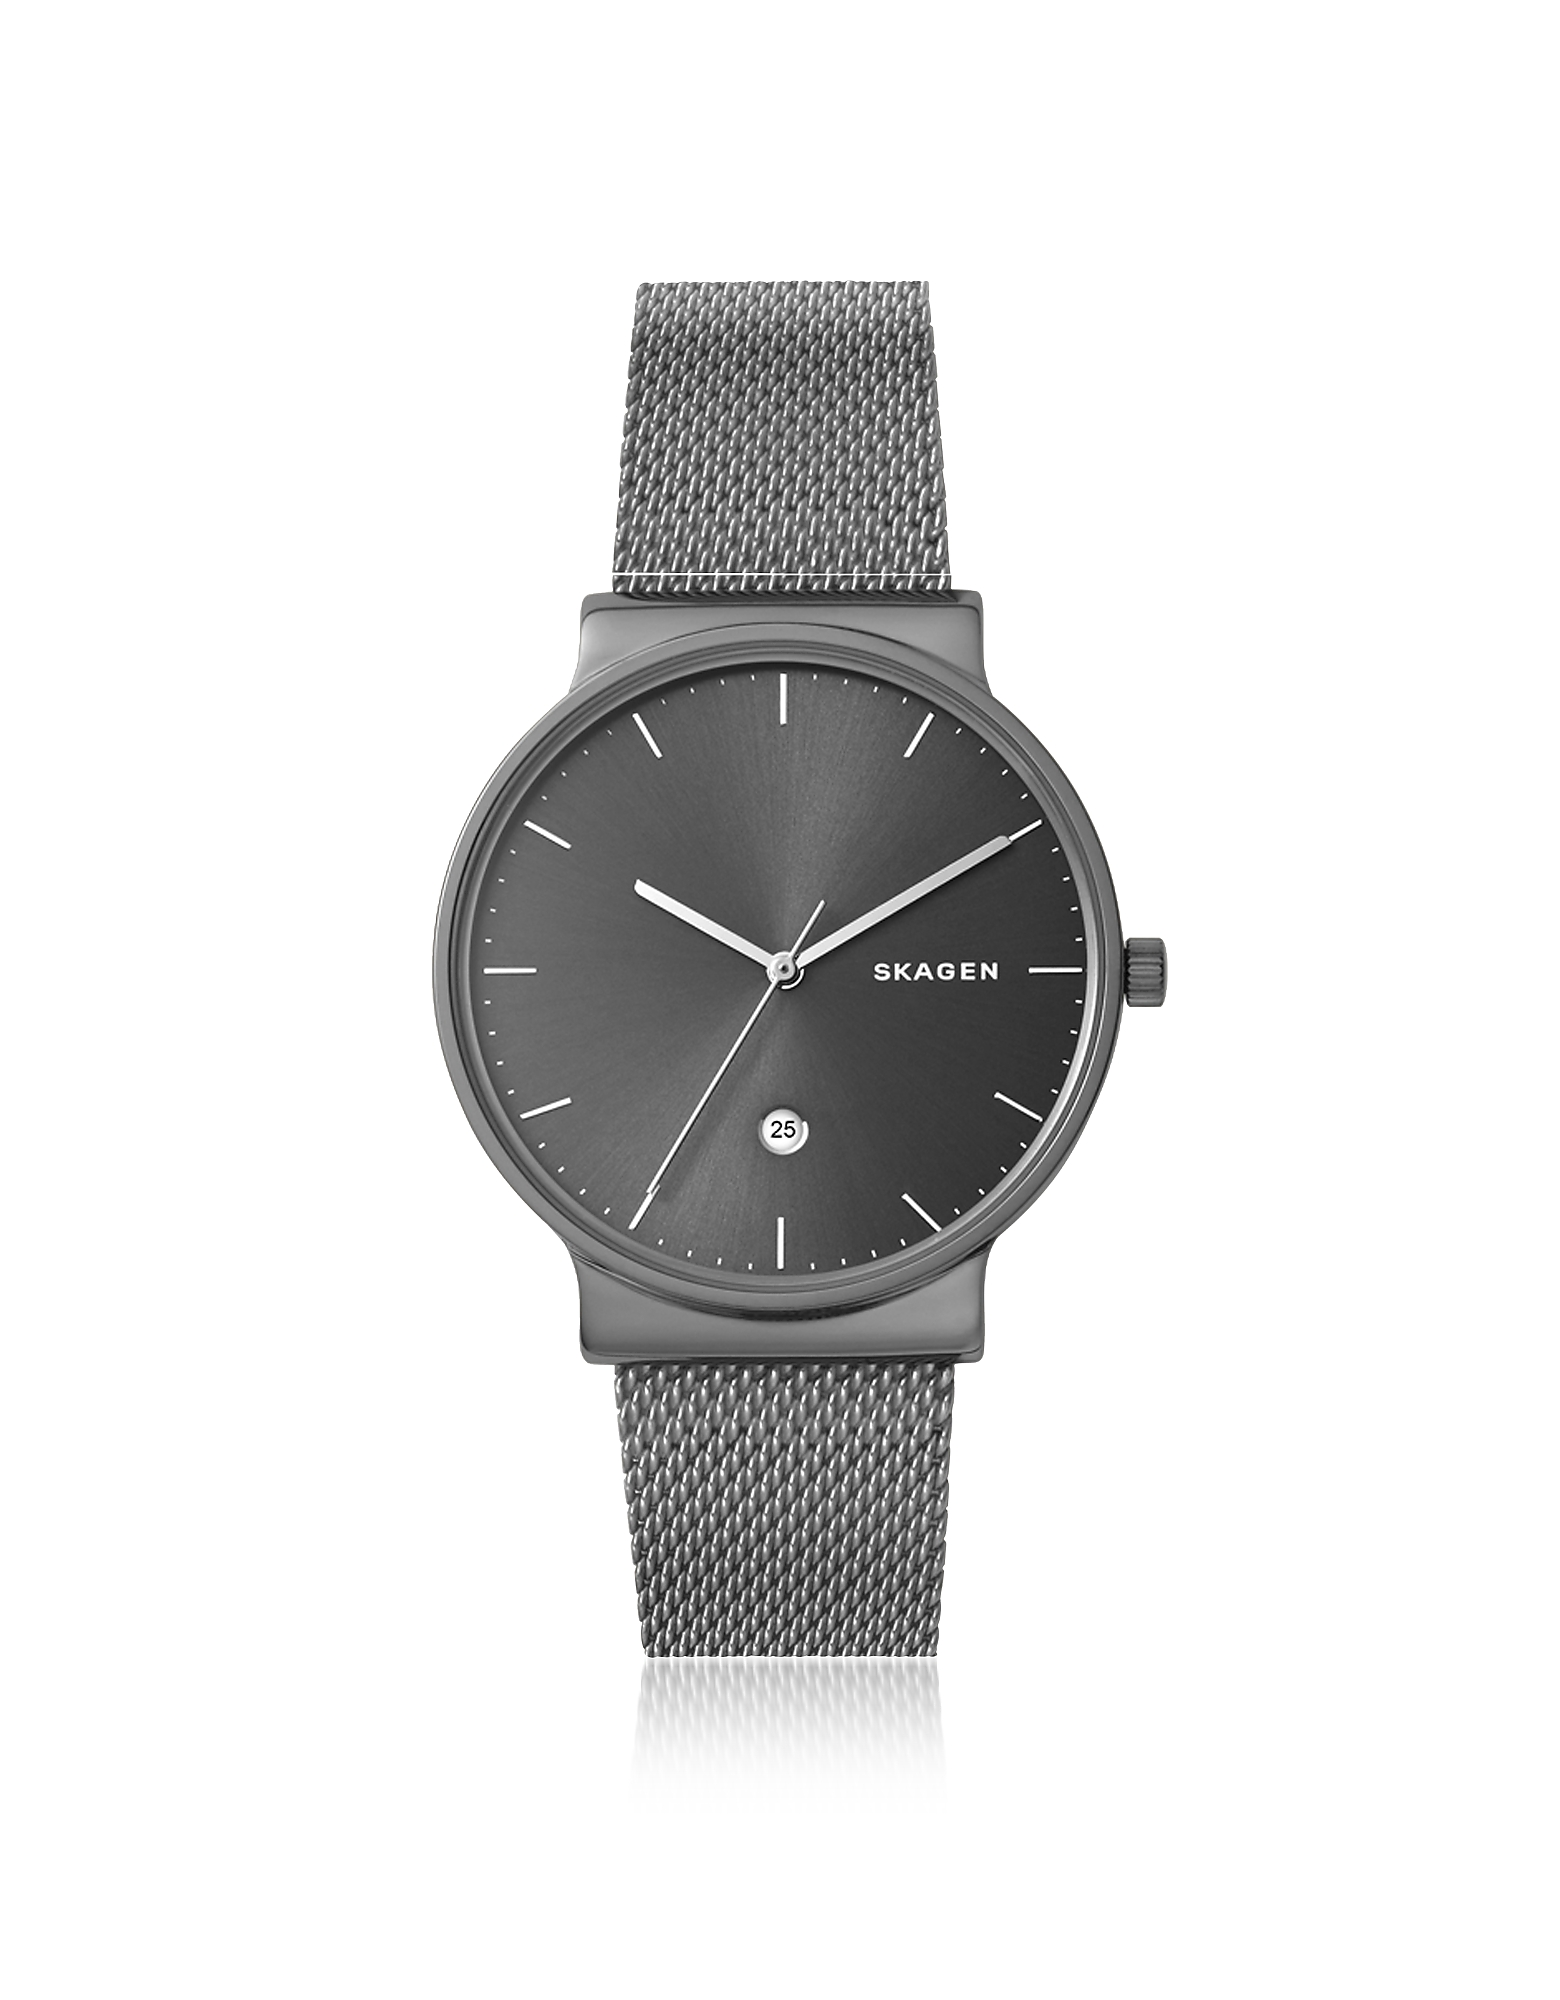 Skagen Men's Watches, Ancher Titanium and Grey Sunray Dial Men's Watch